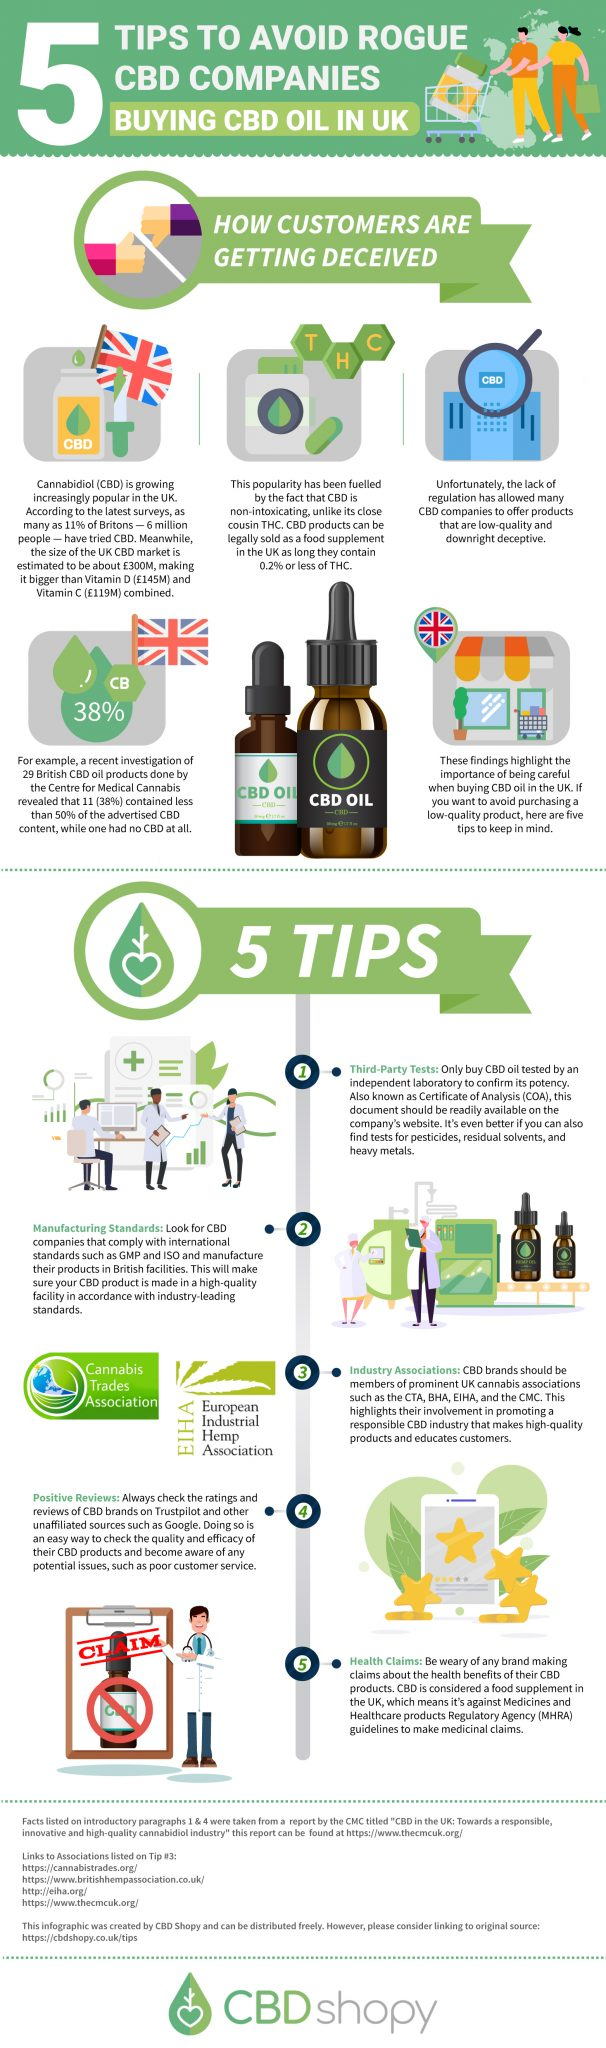 5 Tips to Avoid Rogue CBD Companies Buying CBD Oil in UK